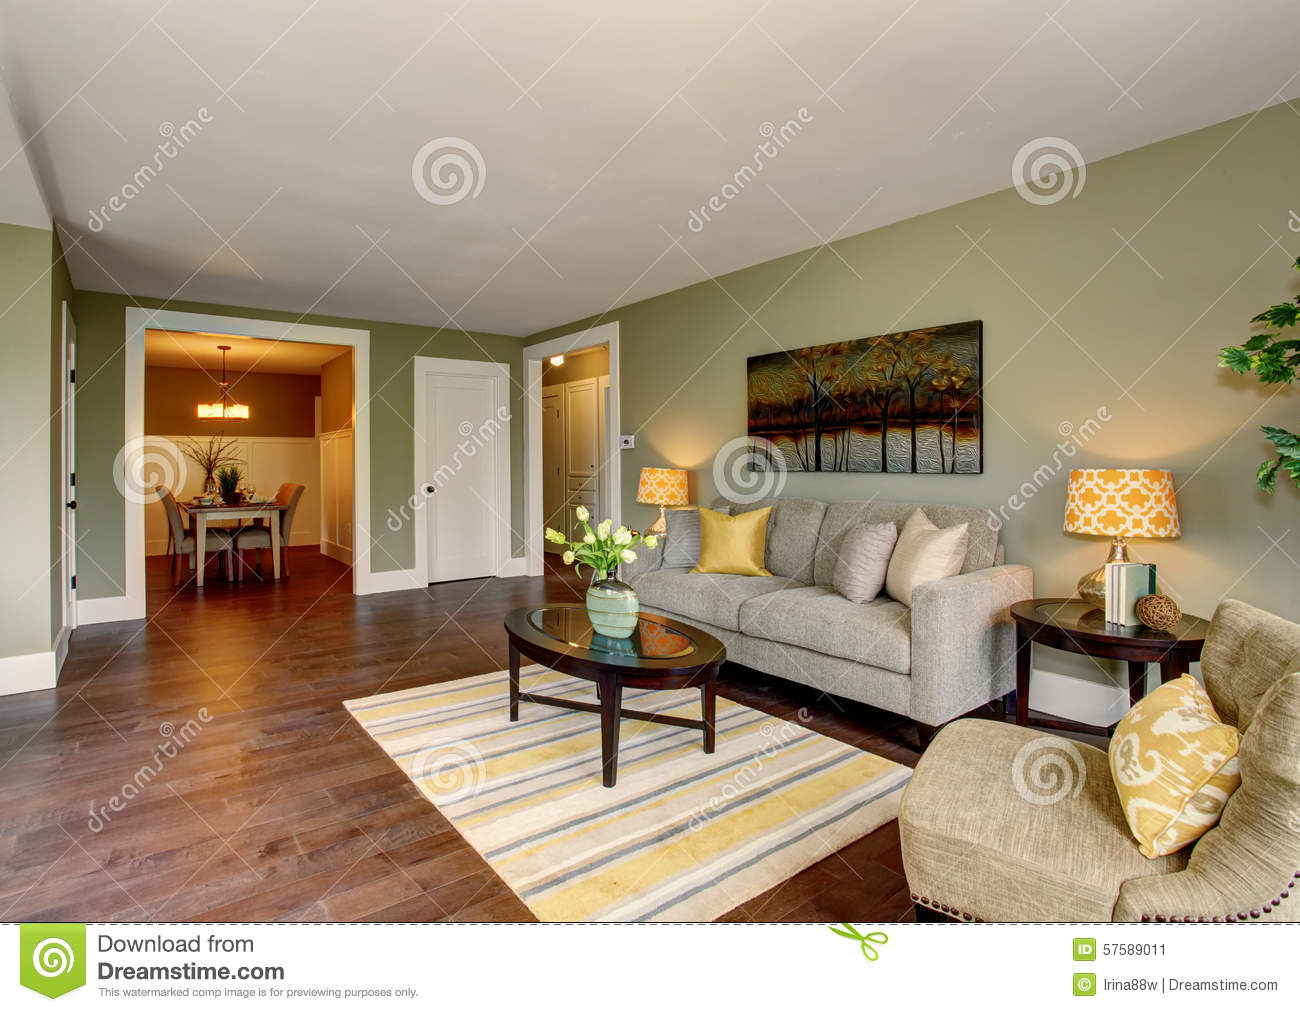 . Lovely Living Room With Green And Yellow Theme  Stock Image   Image